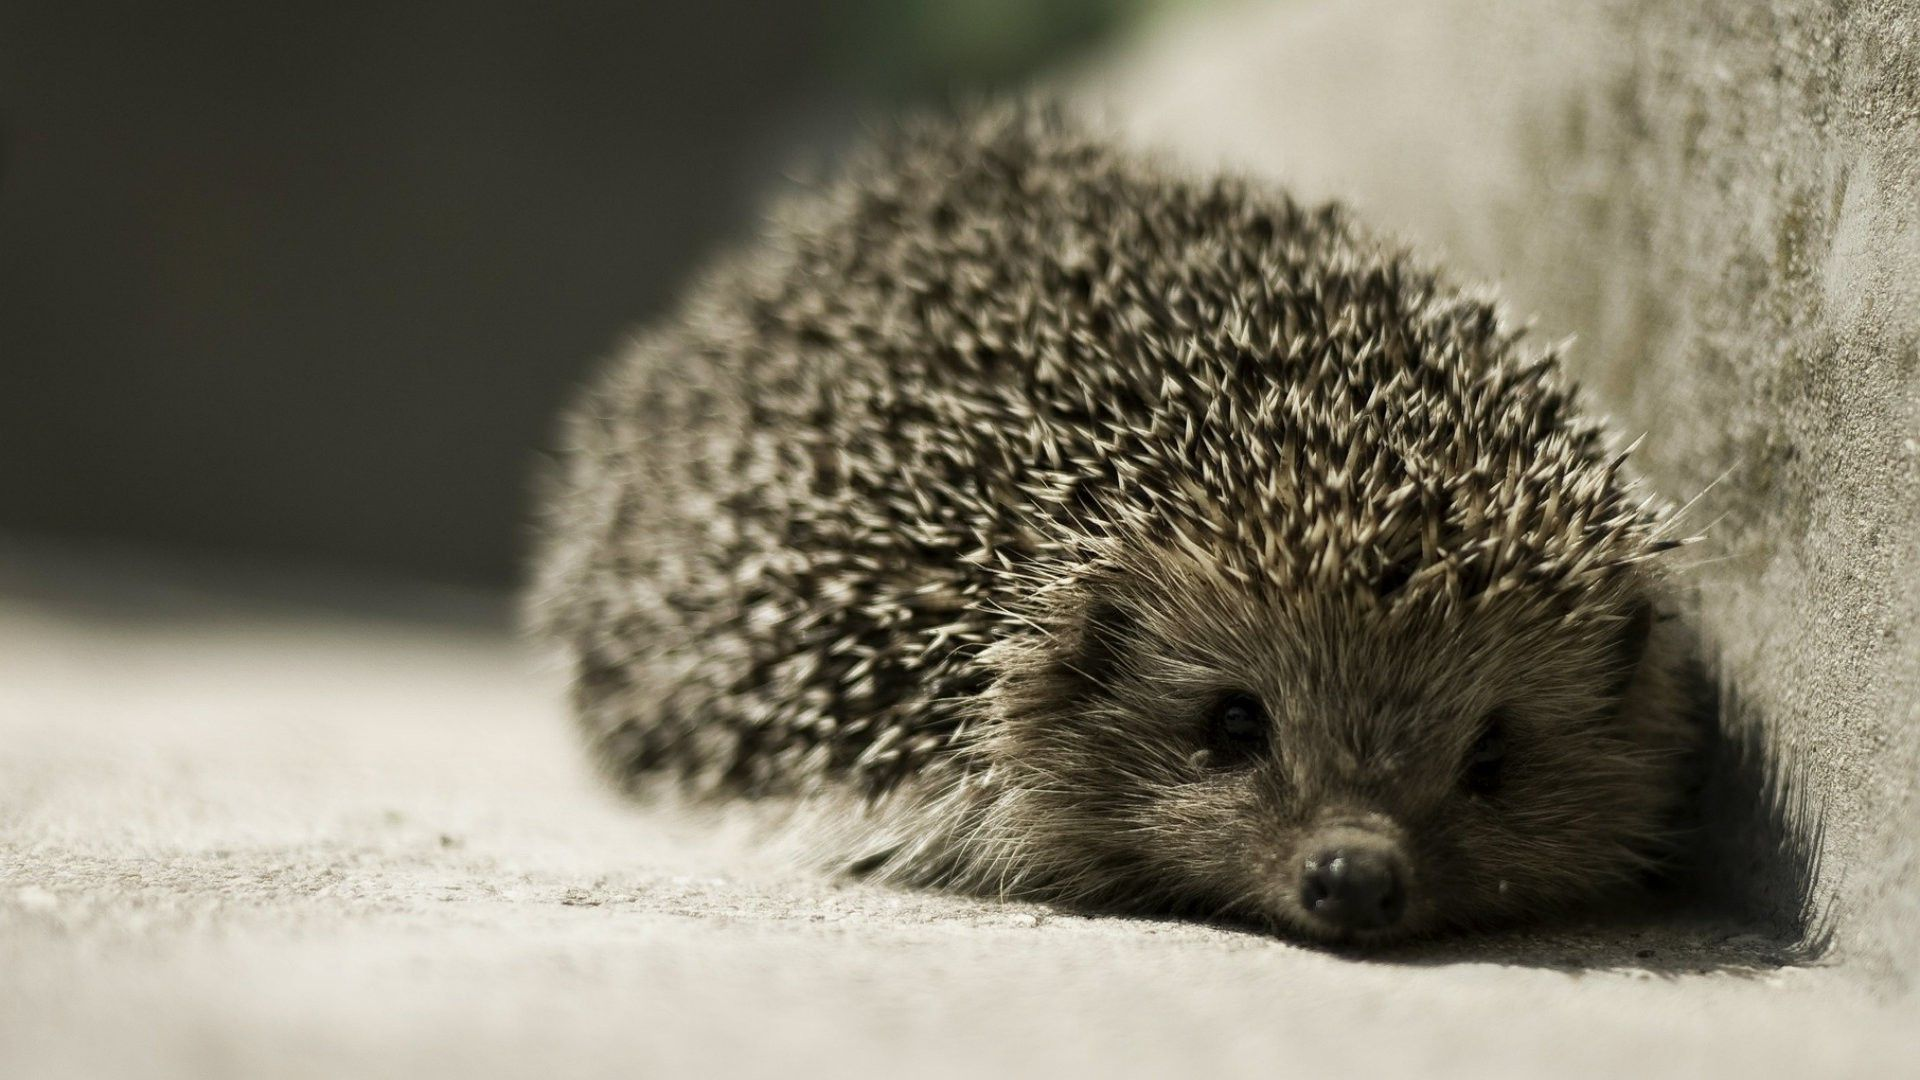 Hedgehog Wallpapers 25 Best Free Hedgehog Hd Wallpaper For Tablet Hedgehog Pet Cute Animal Videos Animal Love Quotes